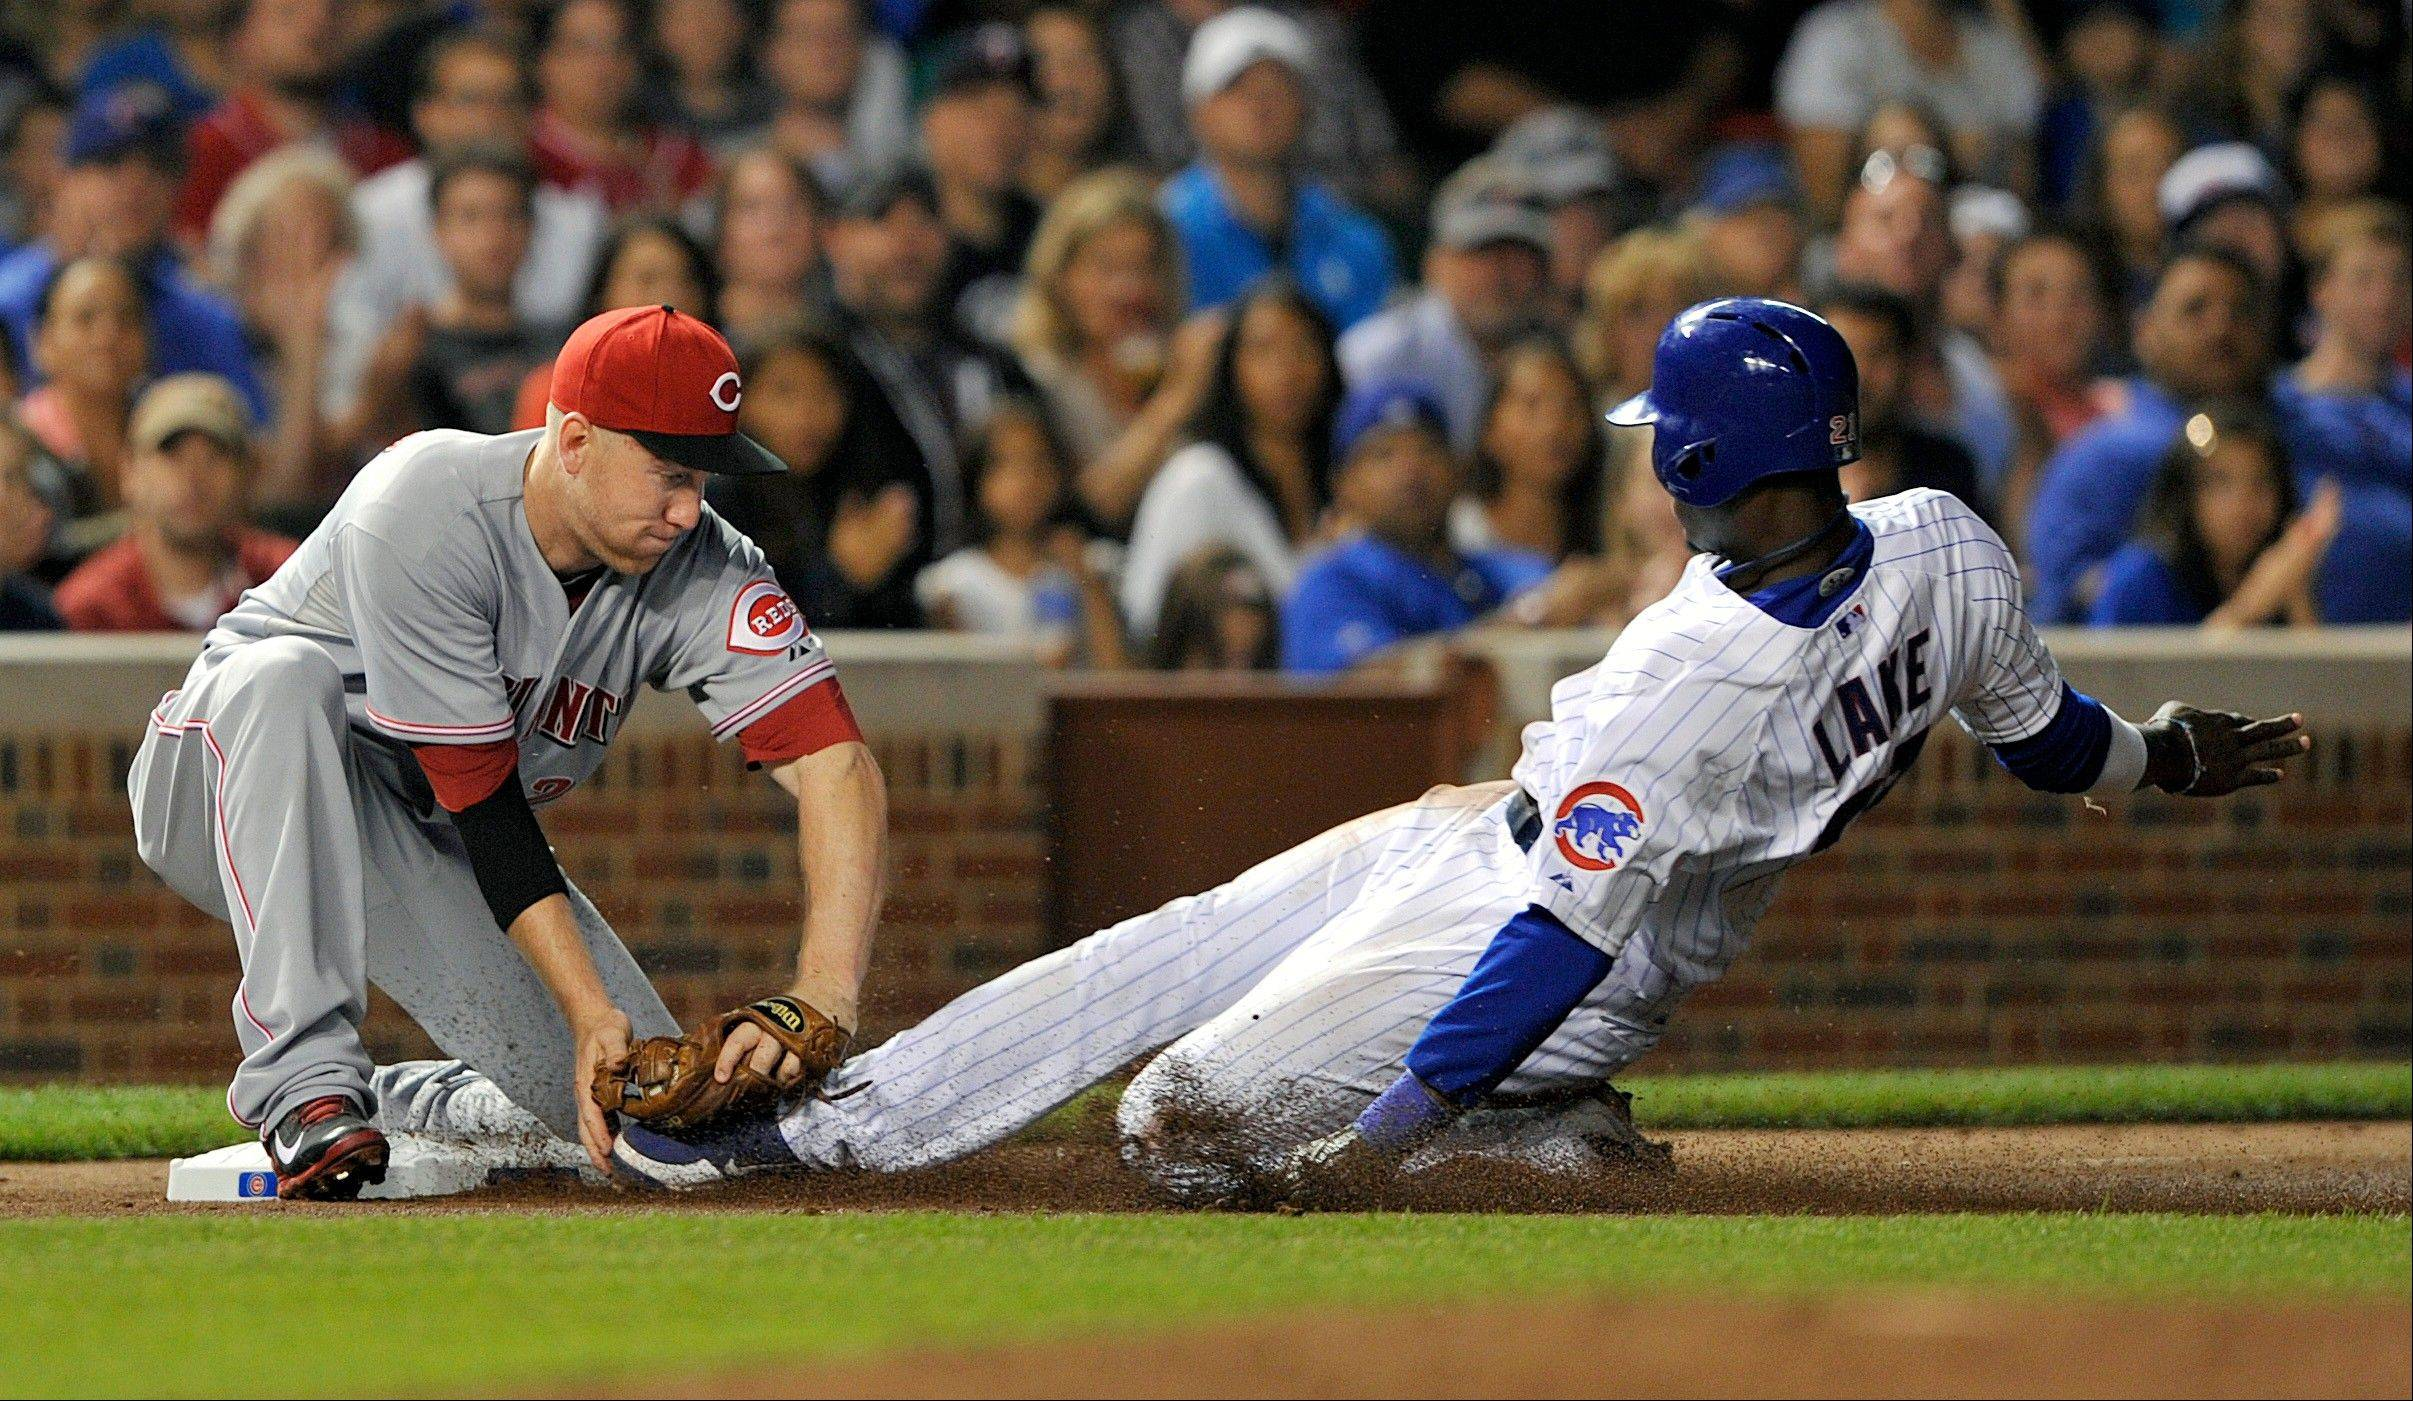 Cincinnati's Todd Frazier tags out the Cubs' Junior Lake at third base after a single by Anthony Rizzo during the sixth inning Monday at Wrigley Field.